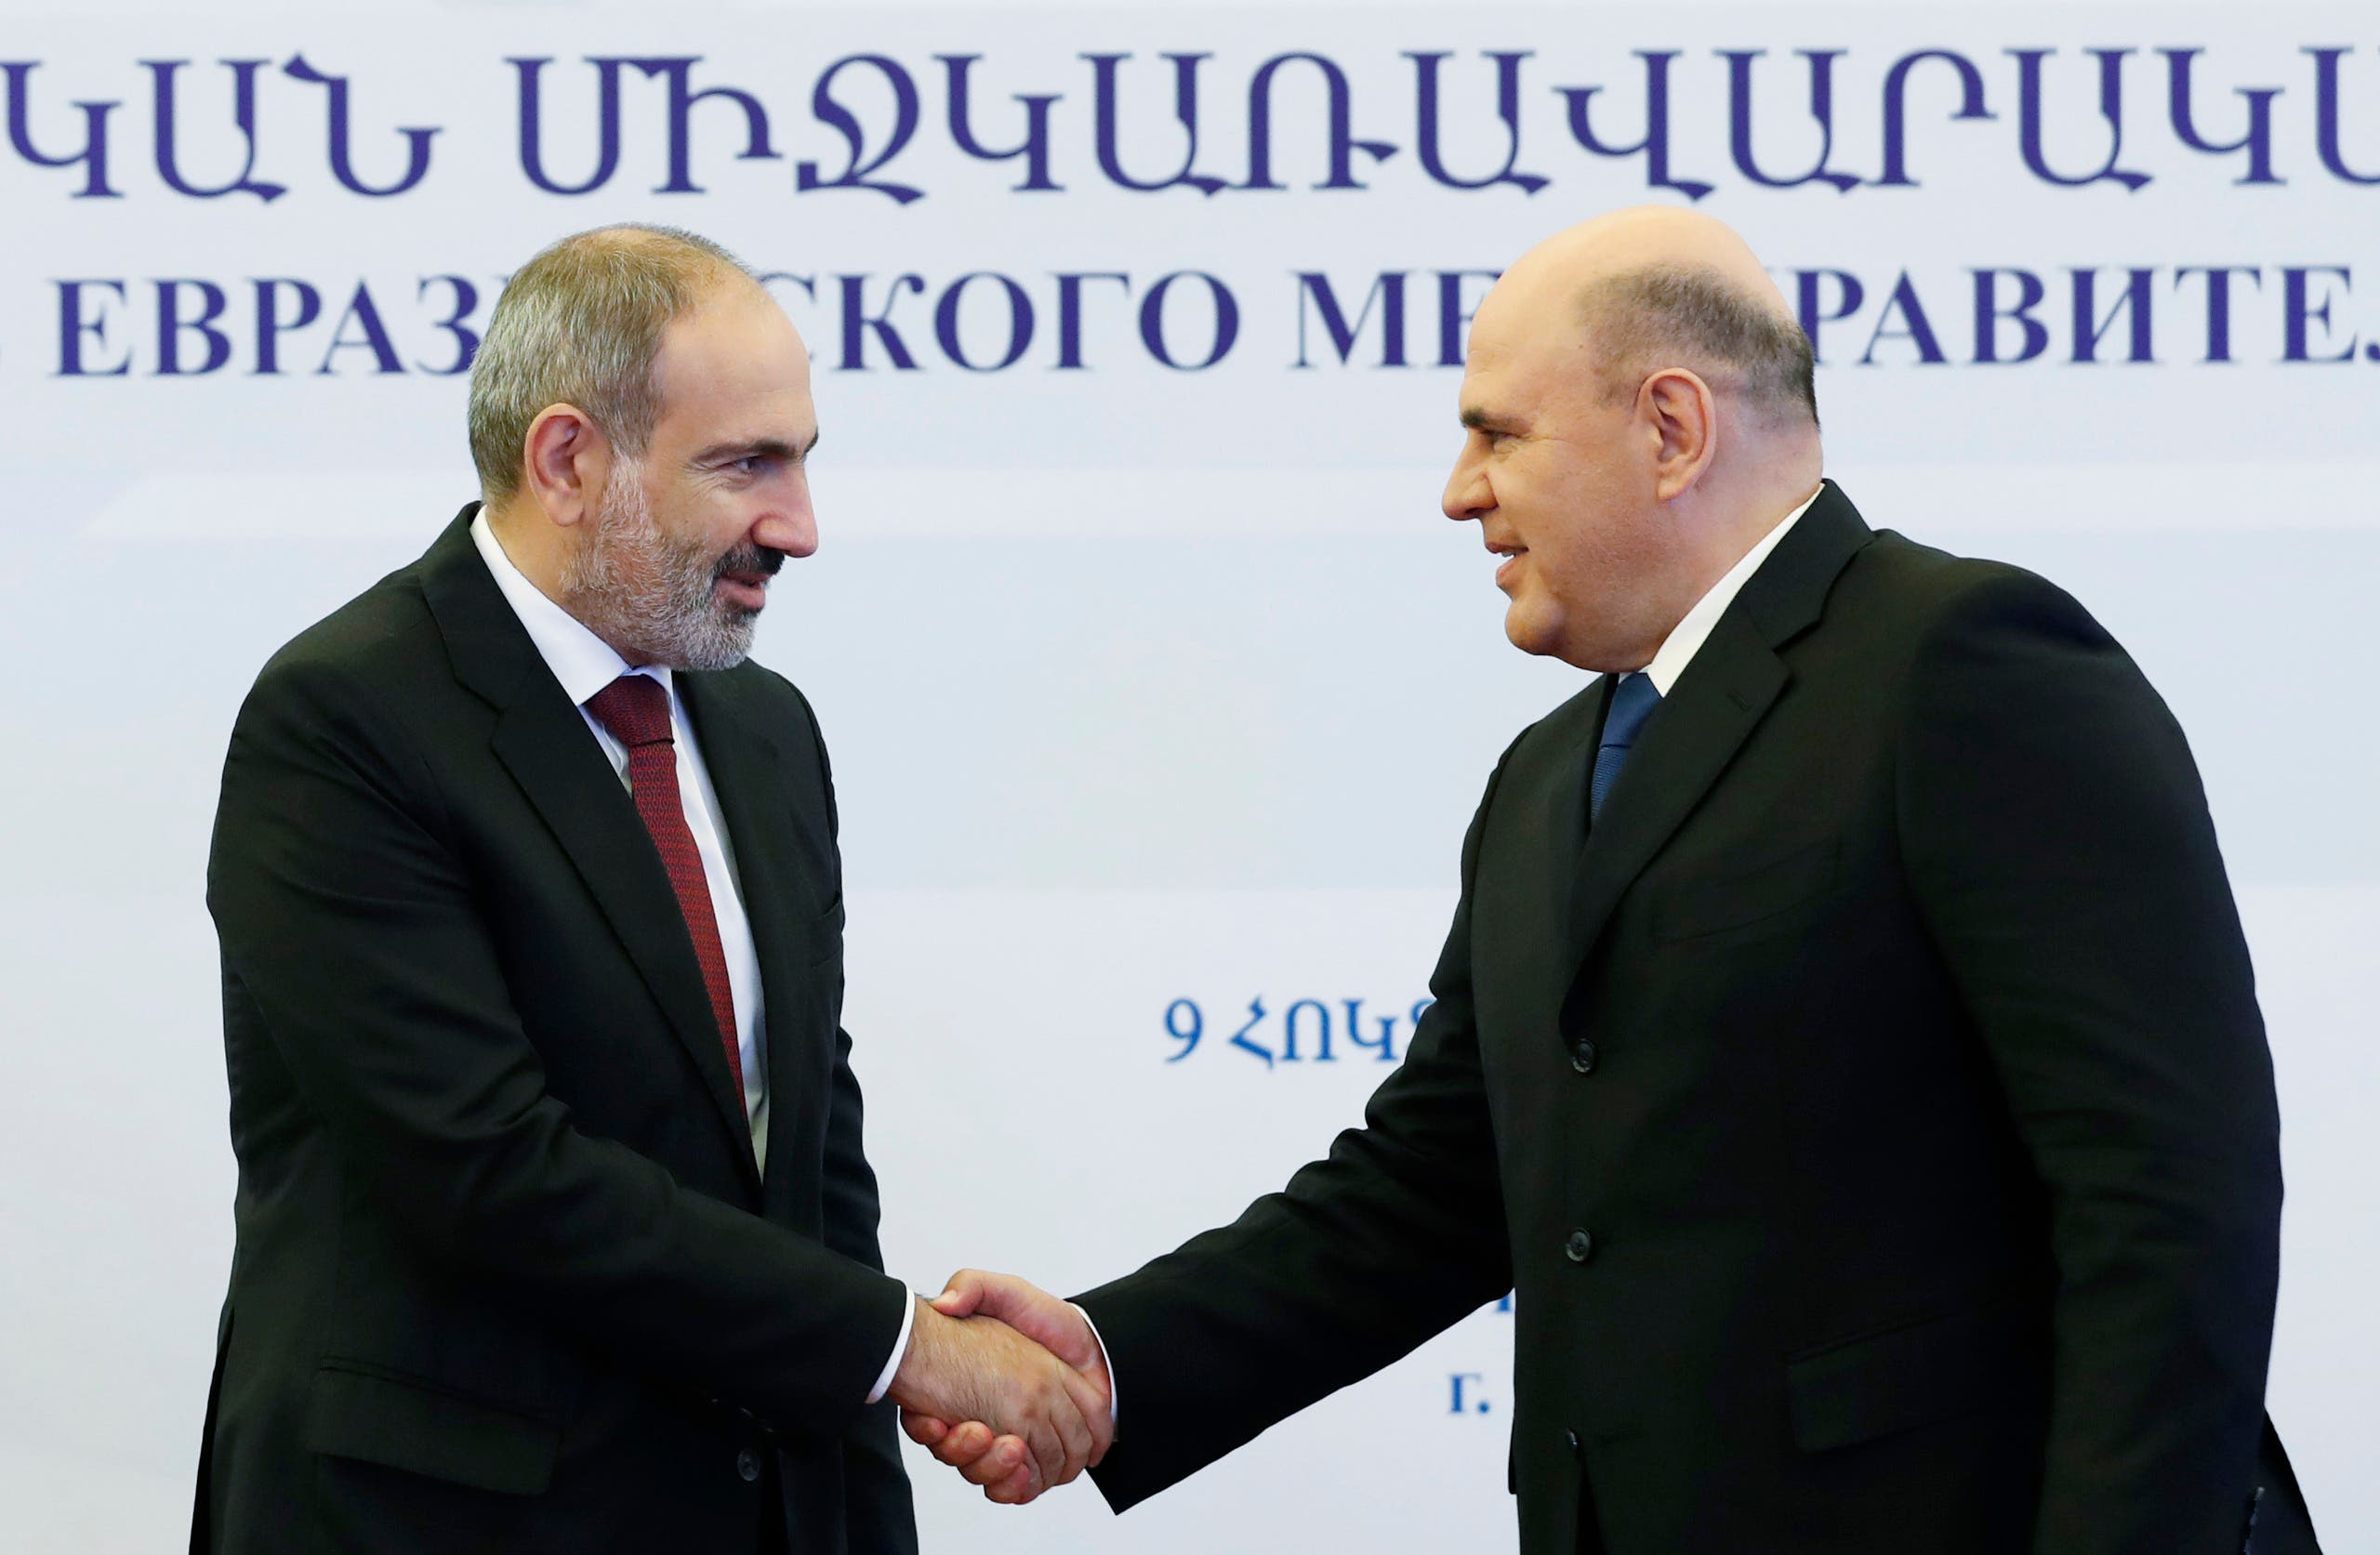 Armenian Prime Minister Nikol Pashinyan (L) shakes hands with Russian Prime Minister Mikhail Mishustin during a meeting of the Eurasian Economic Union's (EAEU) intergovernmental council in Yerevan, on October 9, 2020. (AFP)